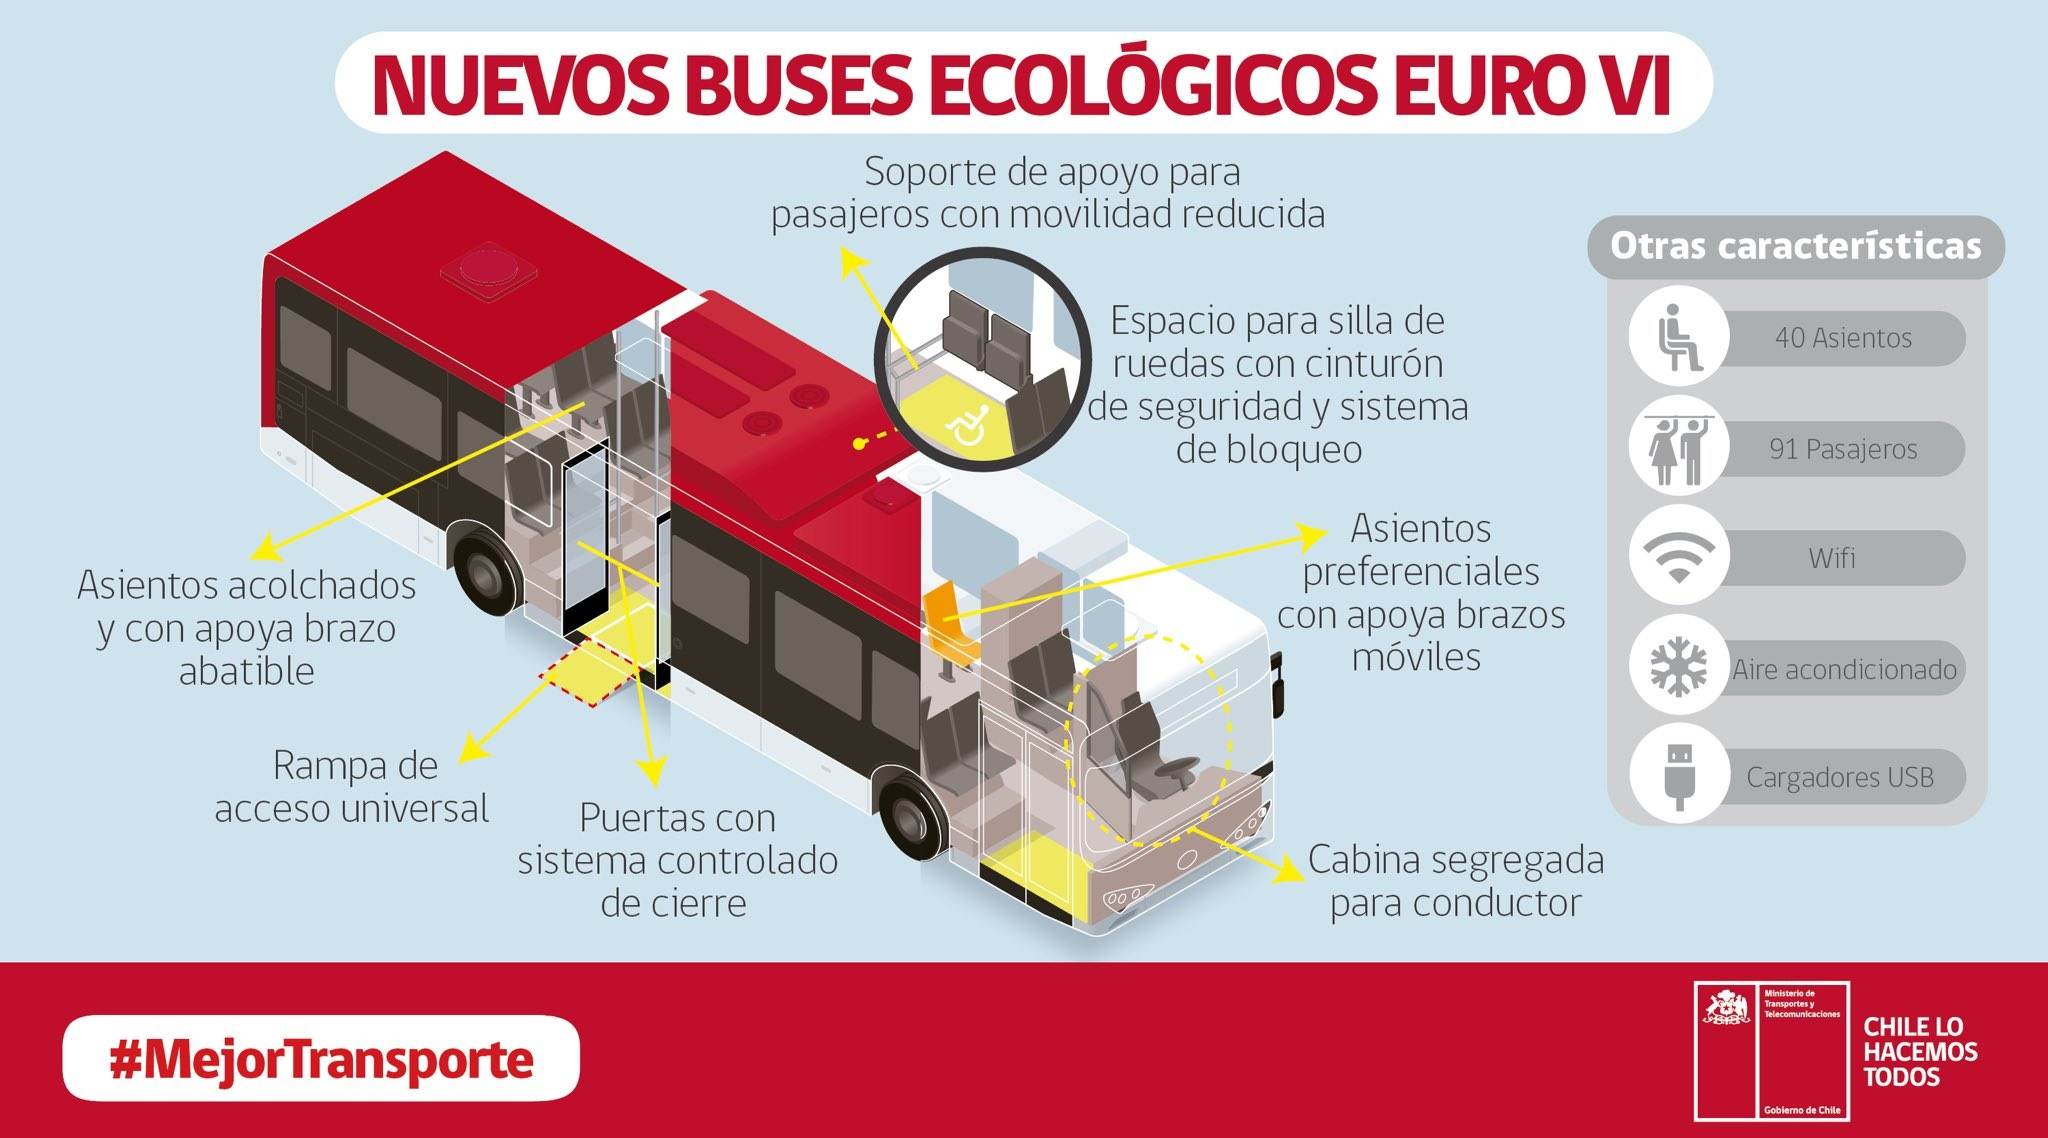 Buses ecologicos